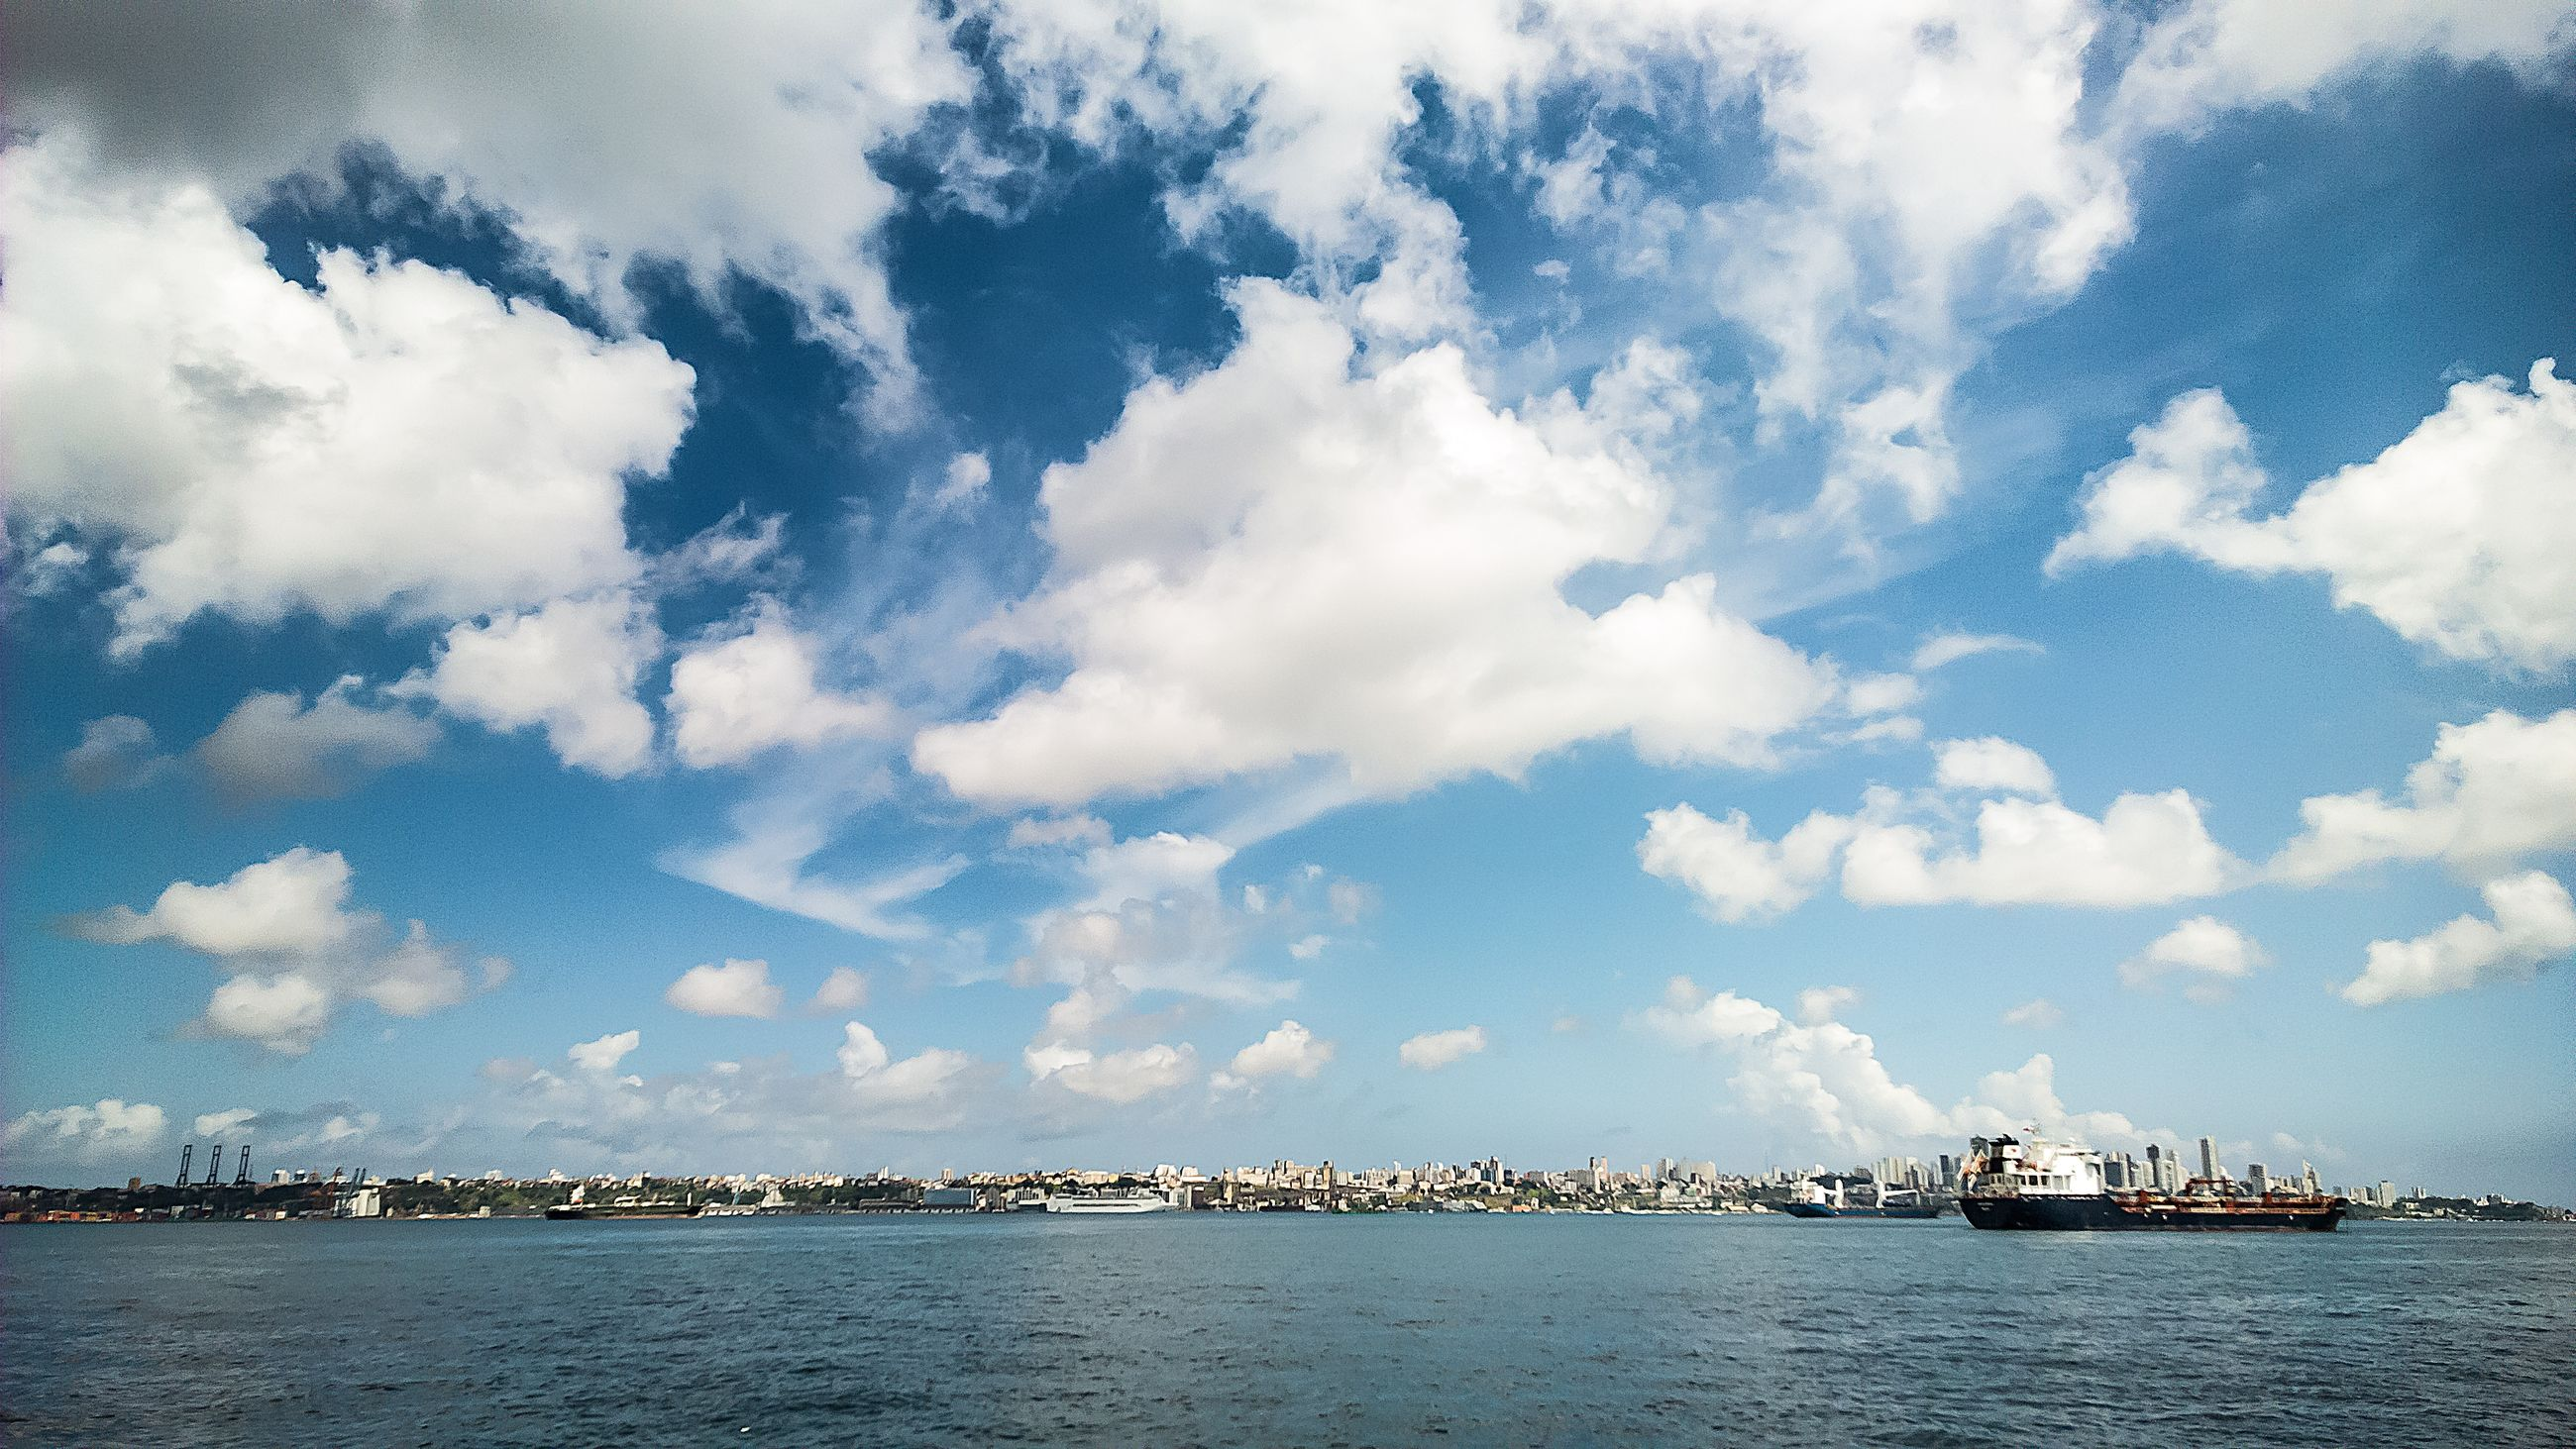 water, waterfront, sea, sky, cloud - sky, tranquility, tranquil scene, nautical vessel, scenics, nature, beauty in nature, cloud, blue, transportation, cloudy, day, rippled, outdoors, built structure, boat